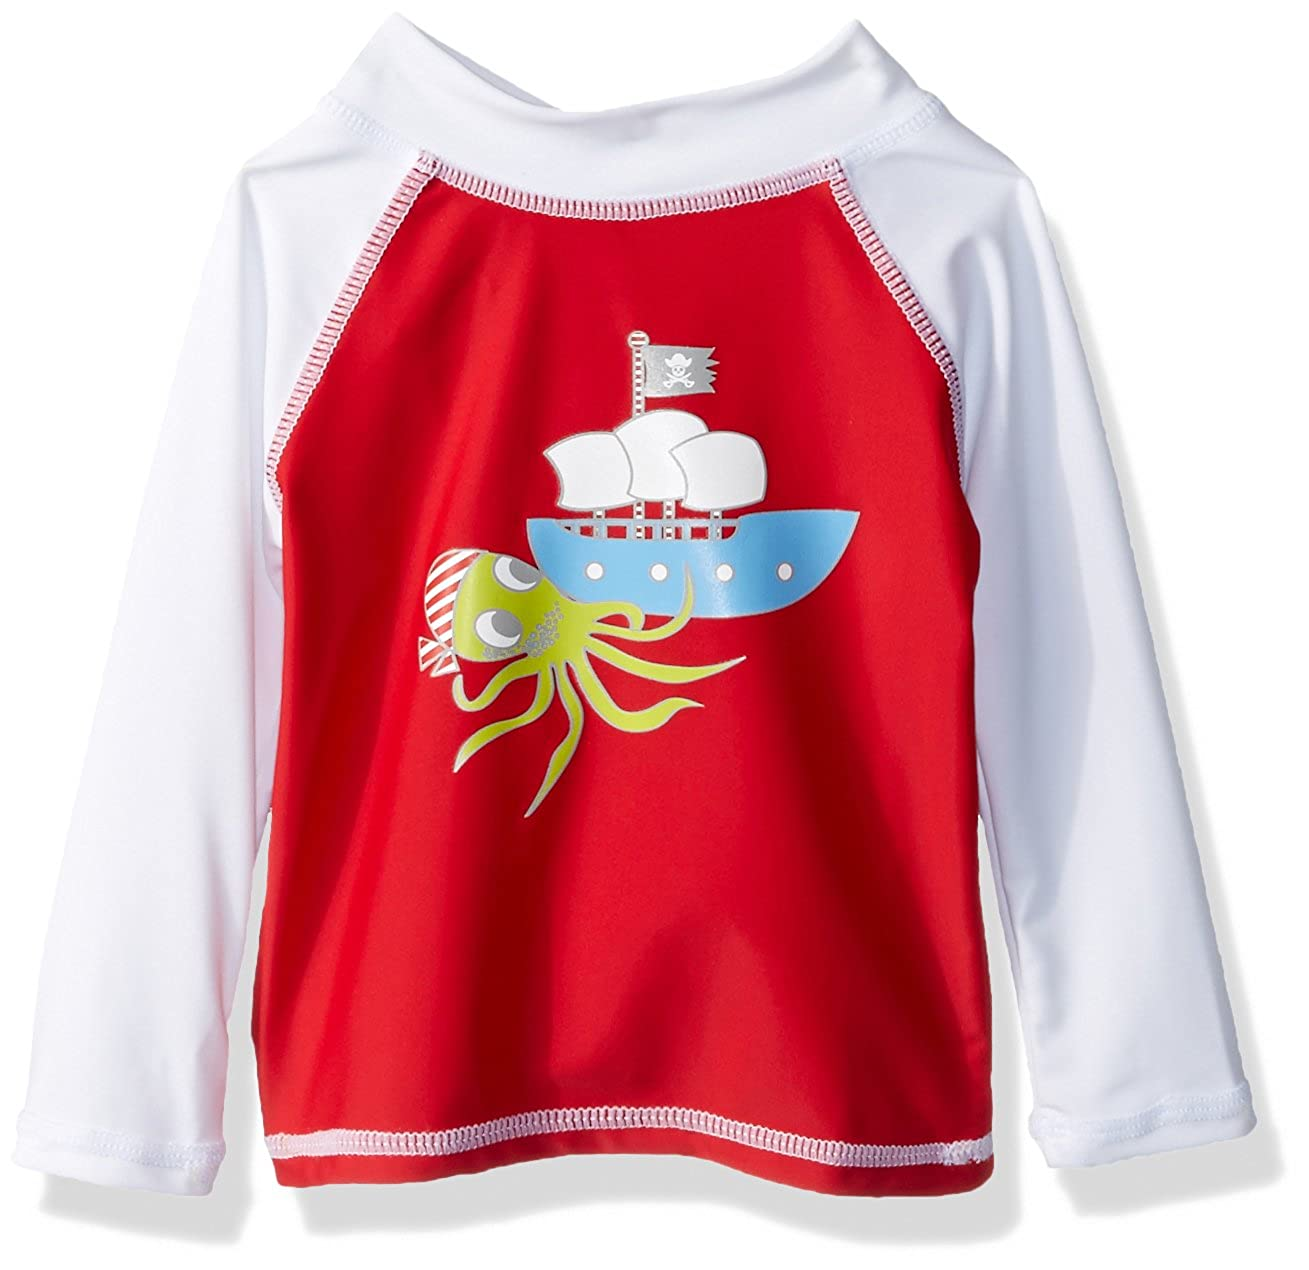 Flap Happy Baby Boys UPF 50+ Graphic Rash Guard/Swim Top RLP7AZ-DUP